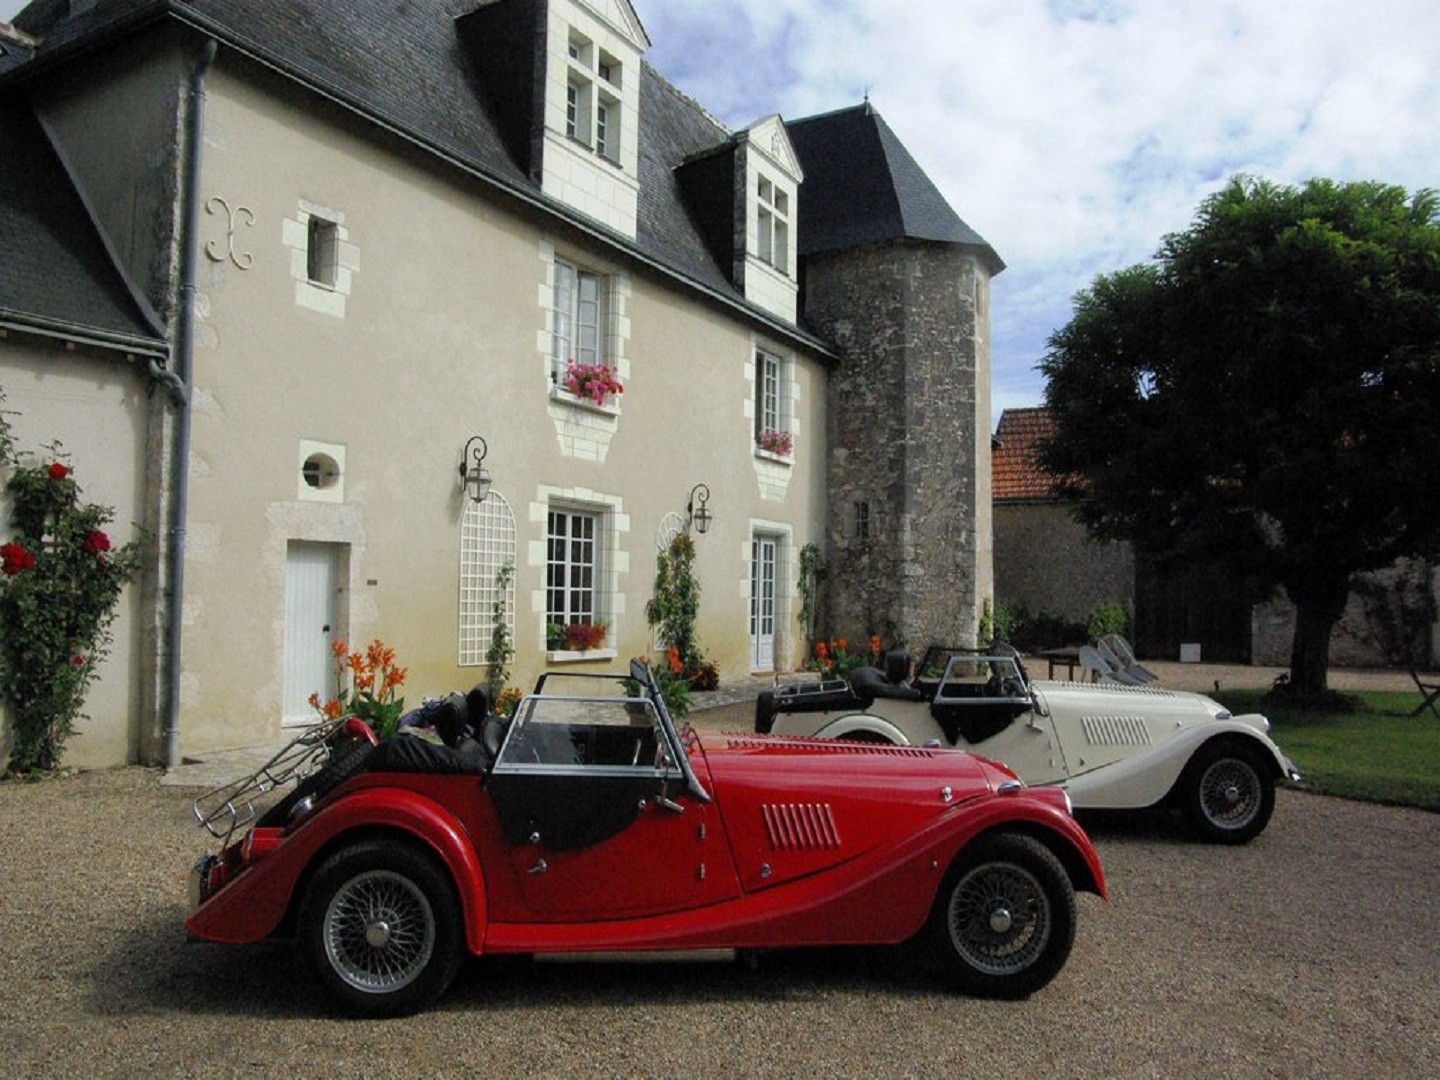 A car parked in front of a house at Manoir de Chaix.